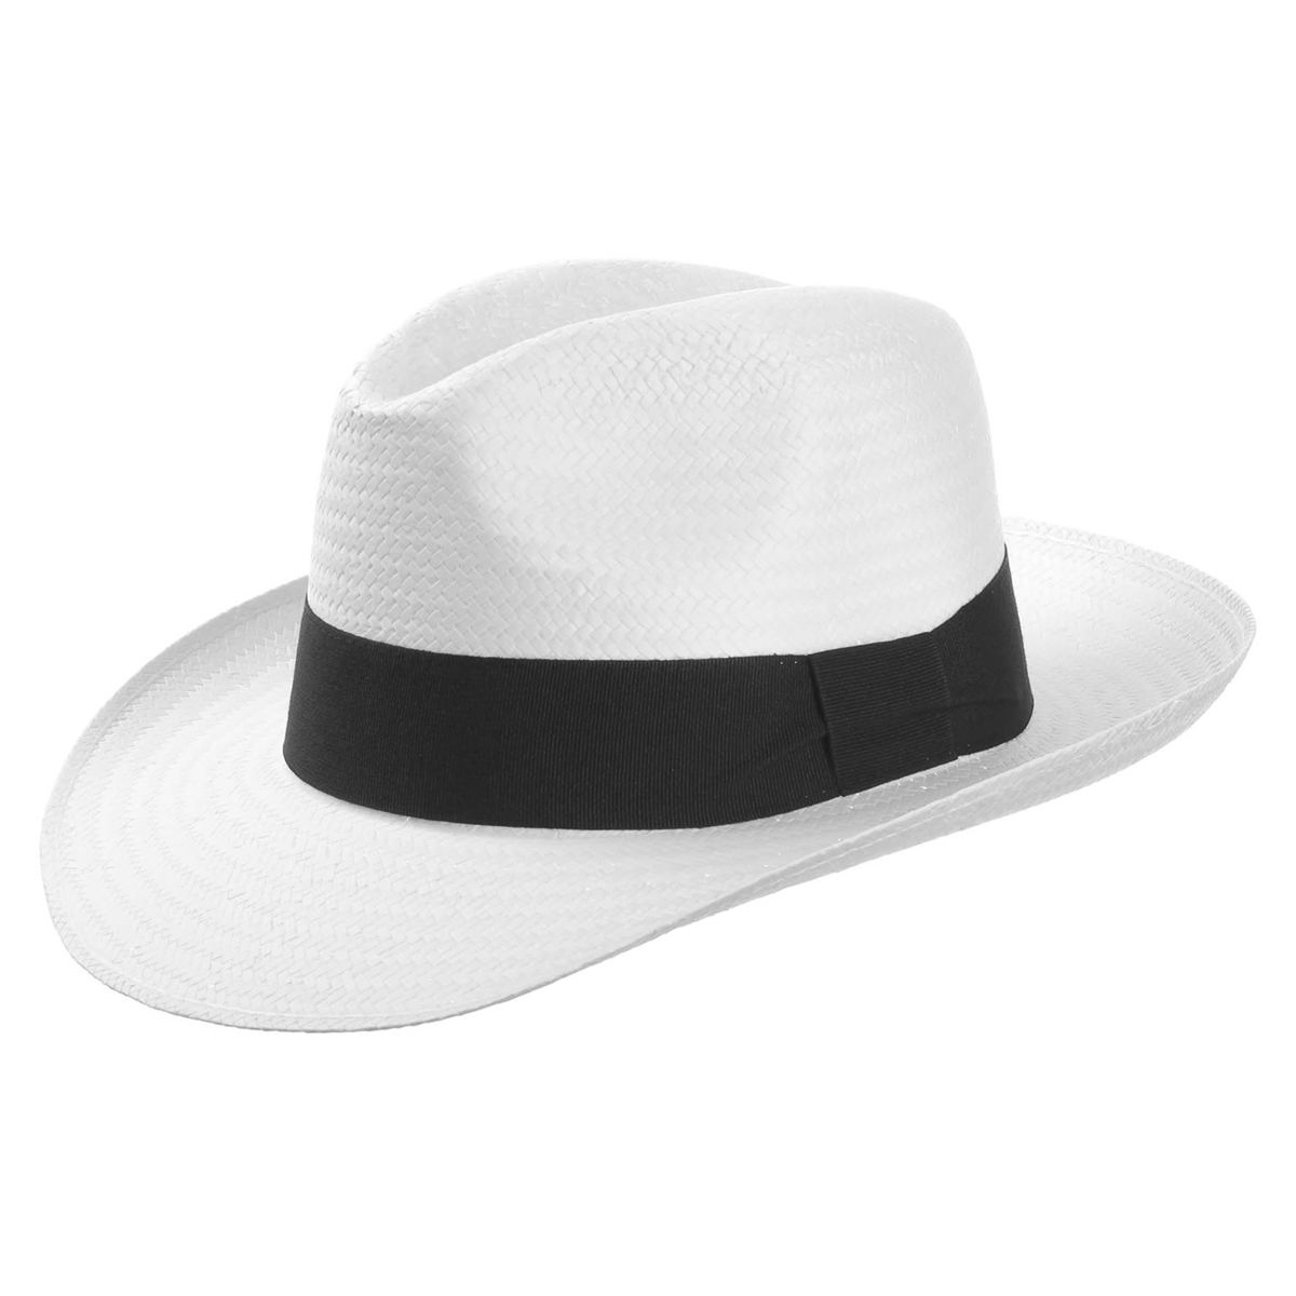 White Mountain Straw Hat (Fedora) with Grosgrain Ribbon | Spring/Summer Hat | Colour White | Sun Hat in Sizes S-XL